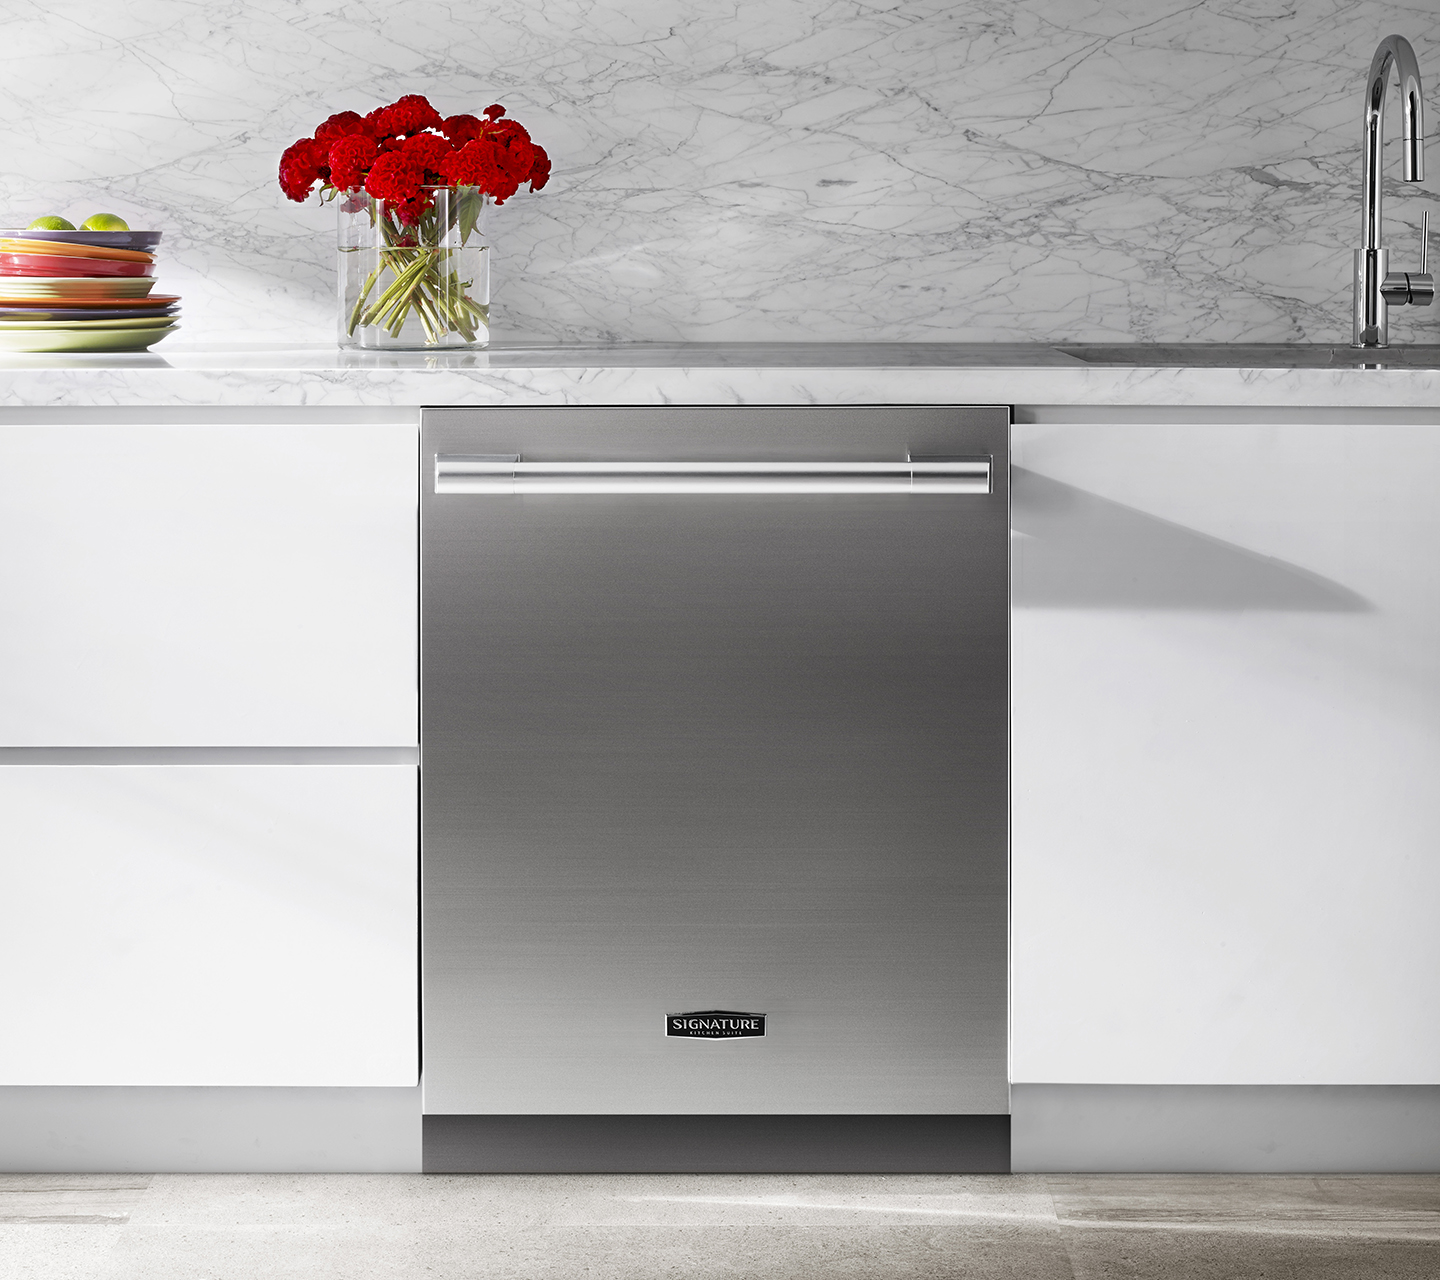 Top Rated Dishwasher from Signature Kitchen Suite